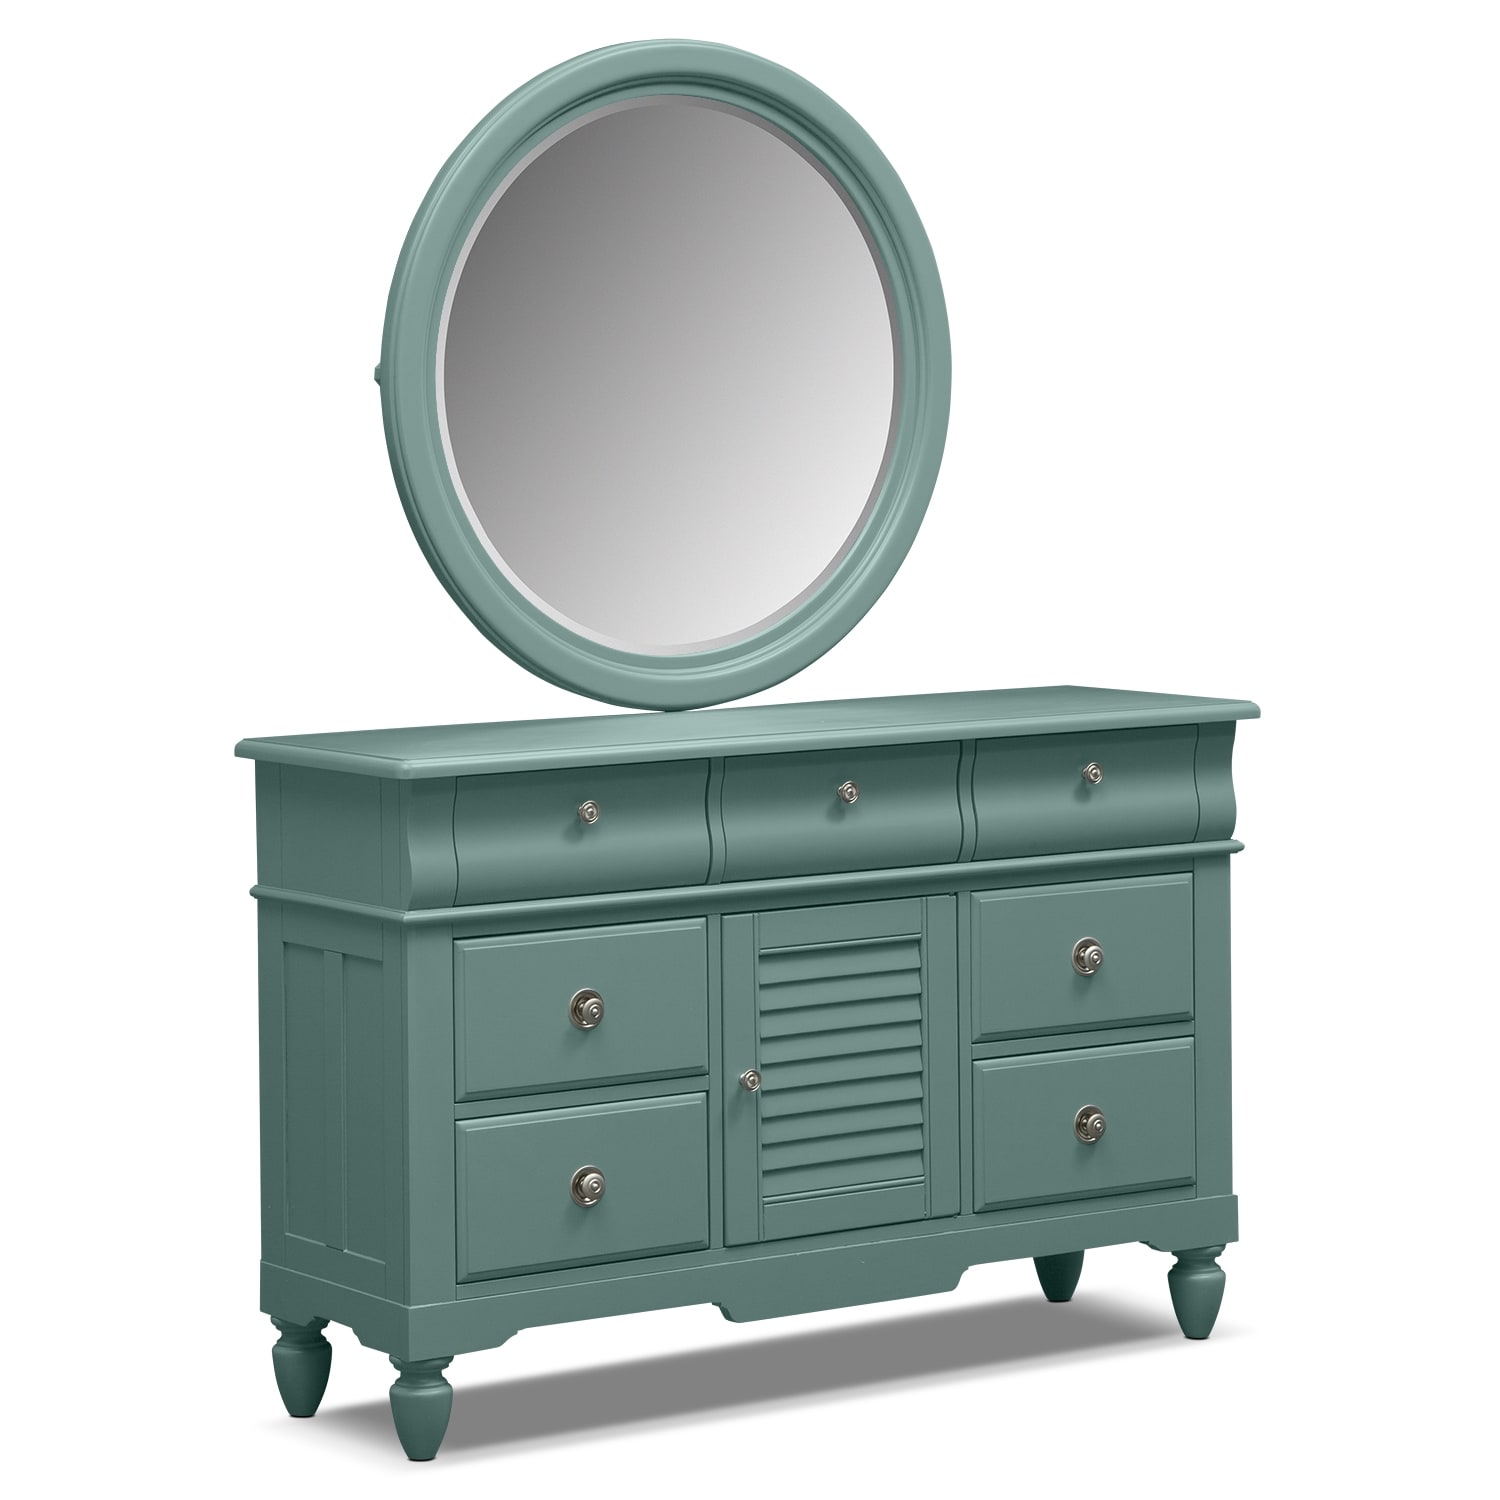 Kids Furniture - Seaside Blue Dresser & Mirror